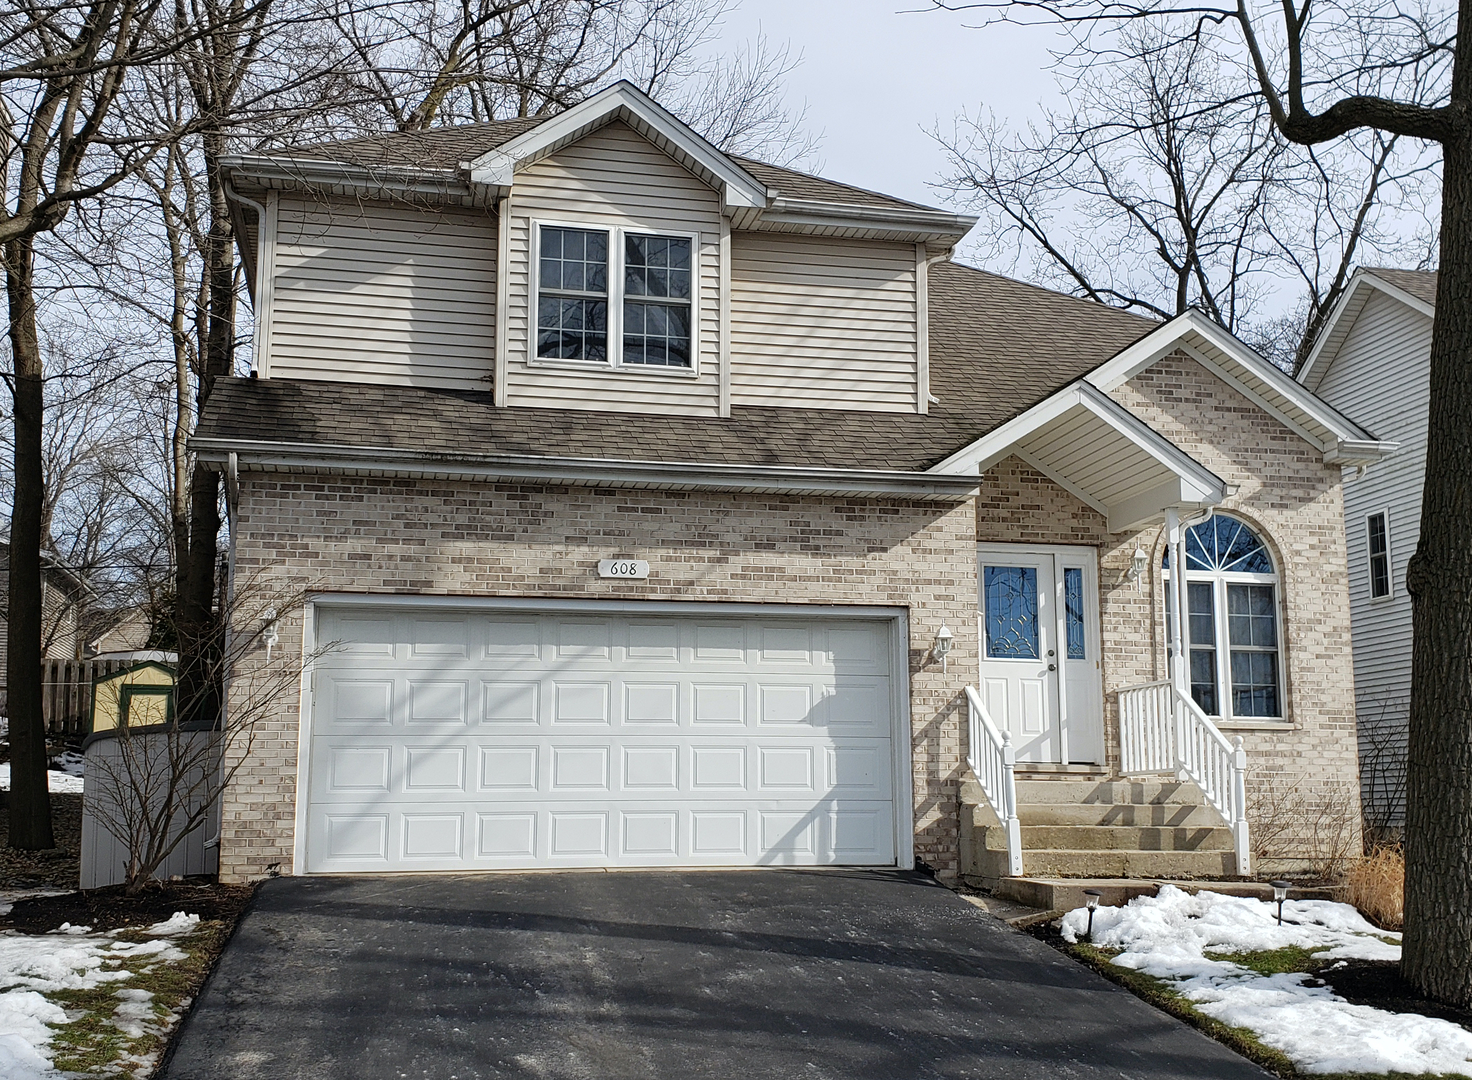 Photo for 608 S 4th Avenue, St. Charles, IL 60174 (MLS # 10636576)